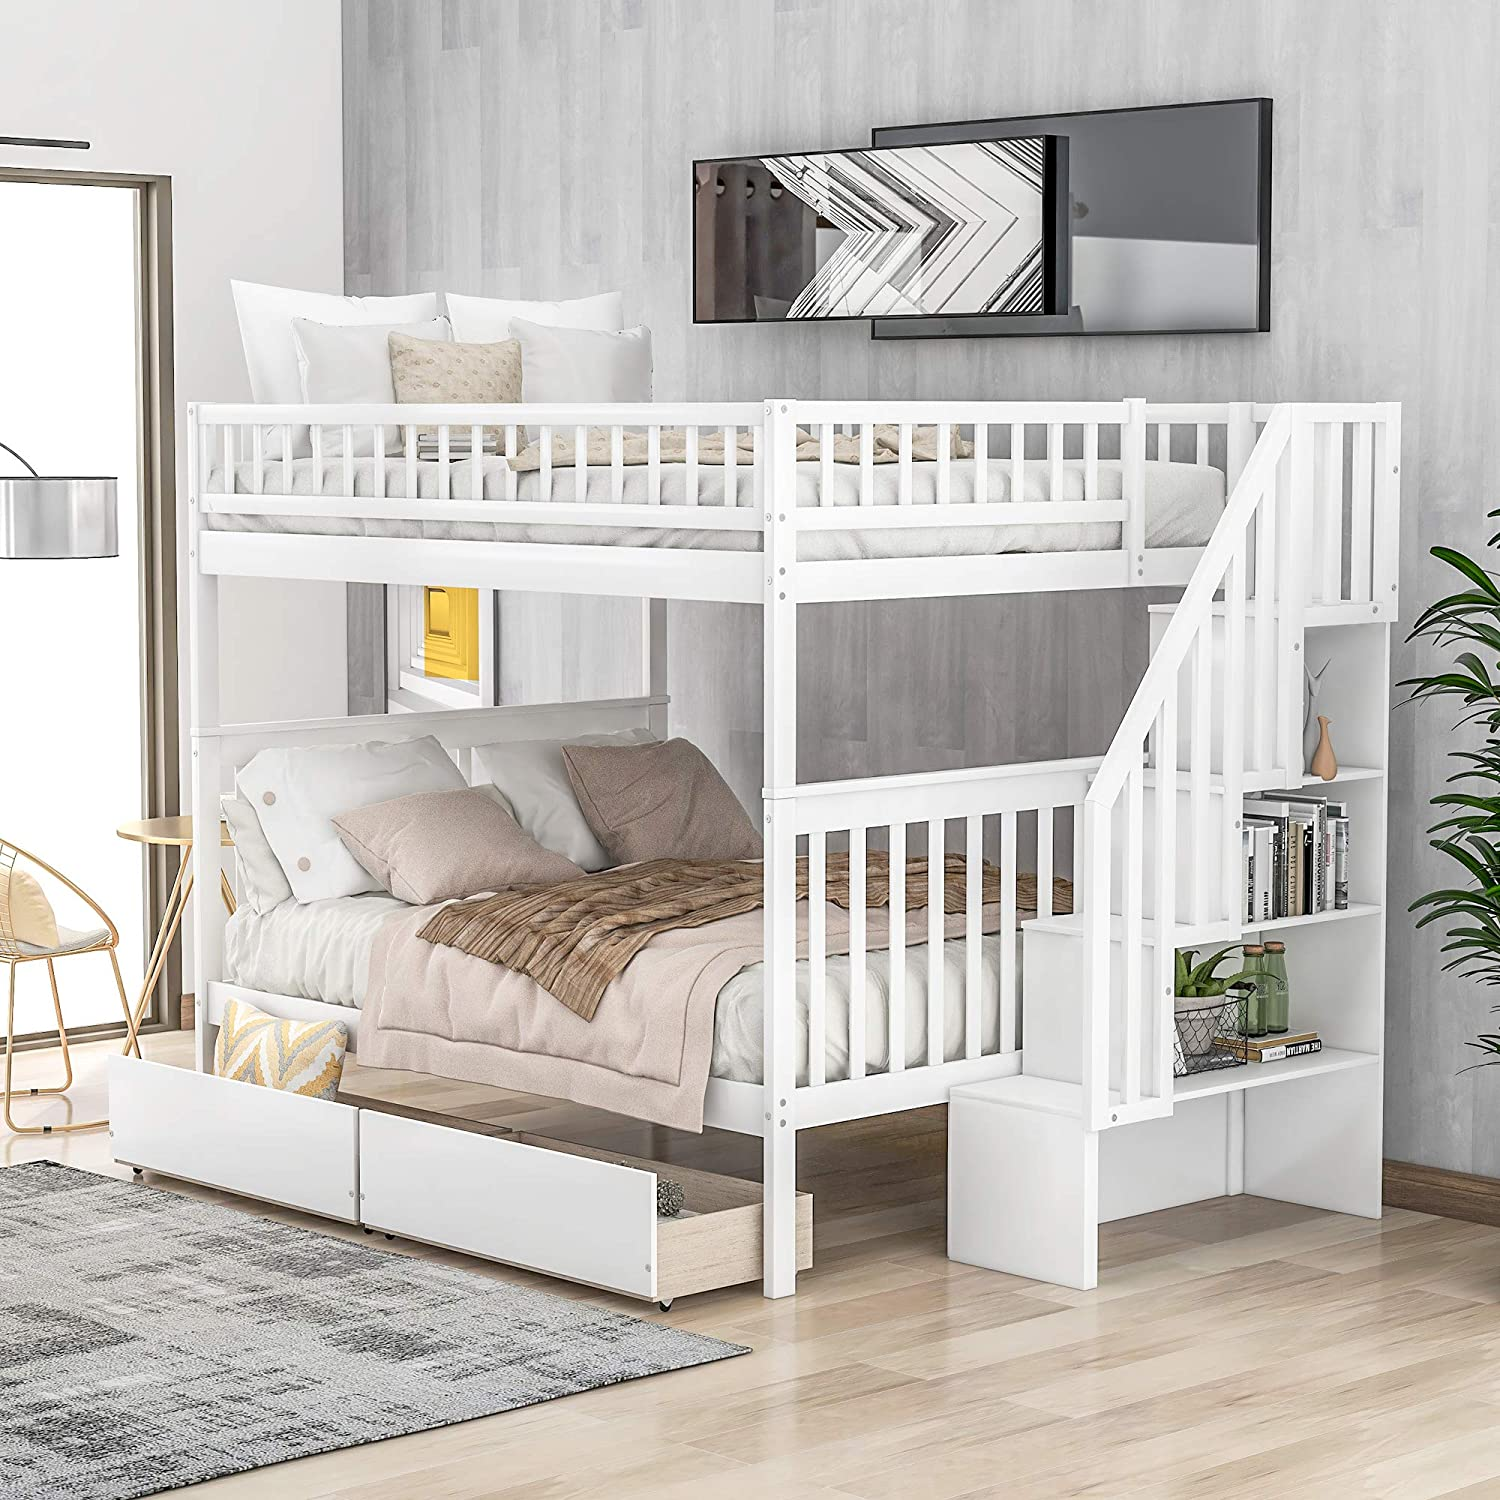 Amazon Com Lumisol Full Over Full Bunk Bed With 2 Drawers And Storage Space Saving Design Bedroom Furniture With Staircass No Box Spring Needed White Kitchen Dining